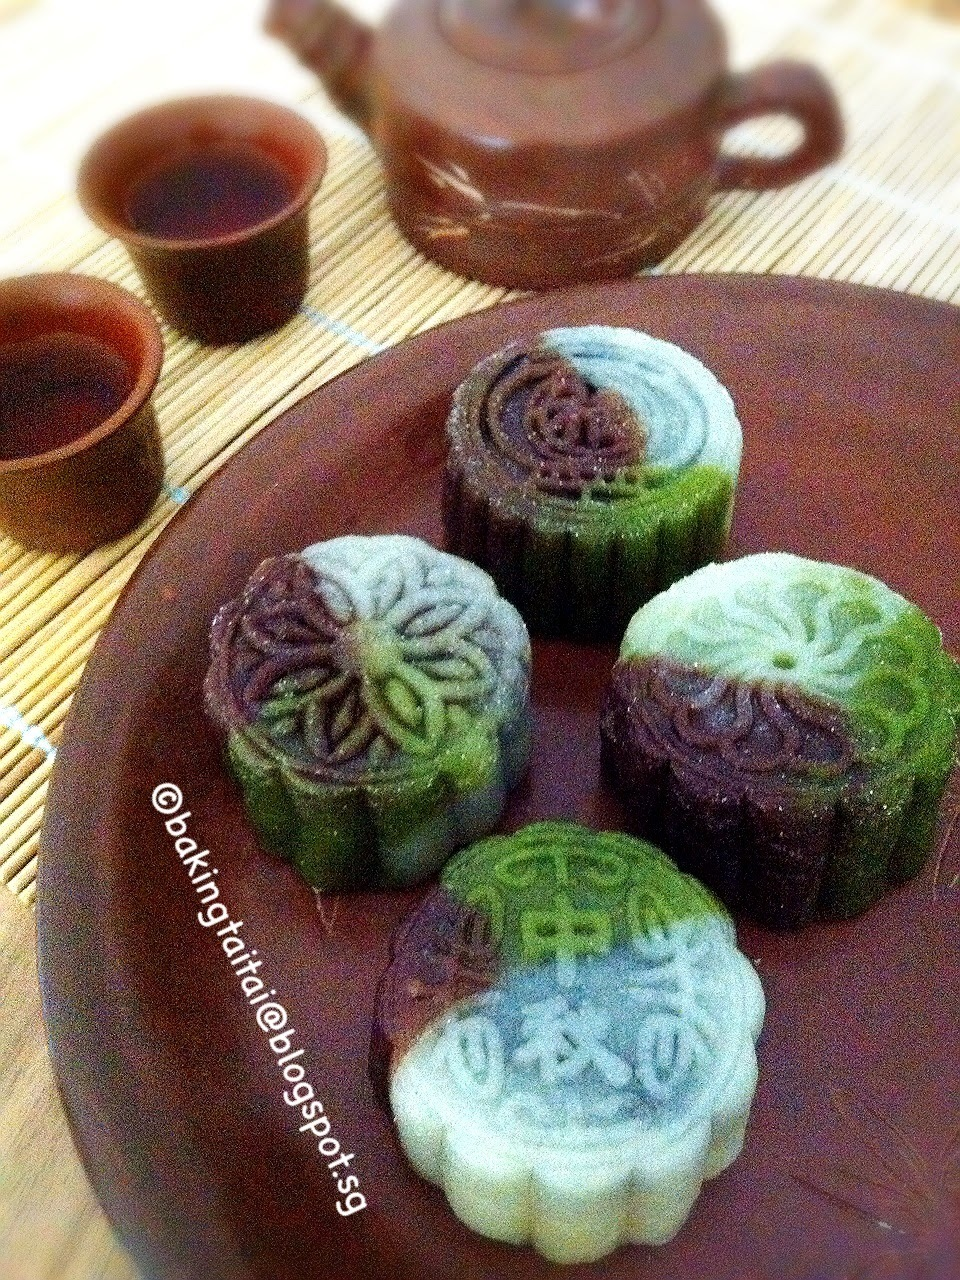 Healthy All Natural Snow-skin Mooncake 健康全天然材料冰皮月饼 (中英食谱教程)